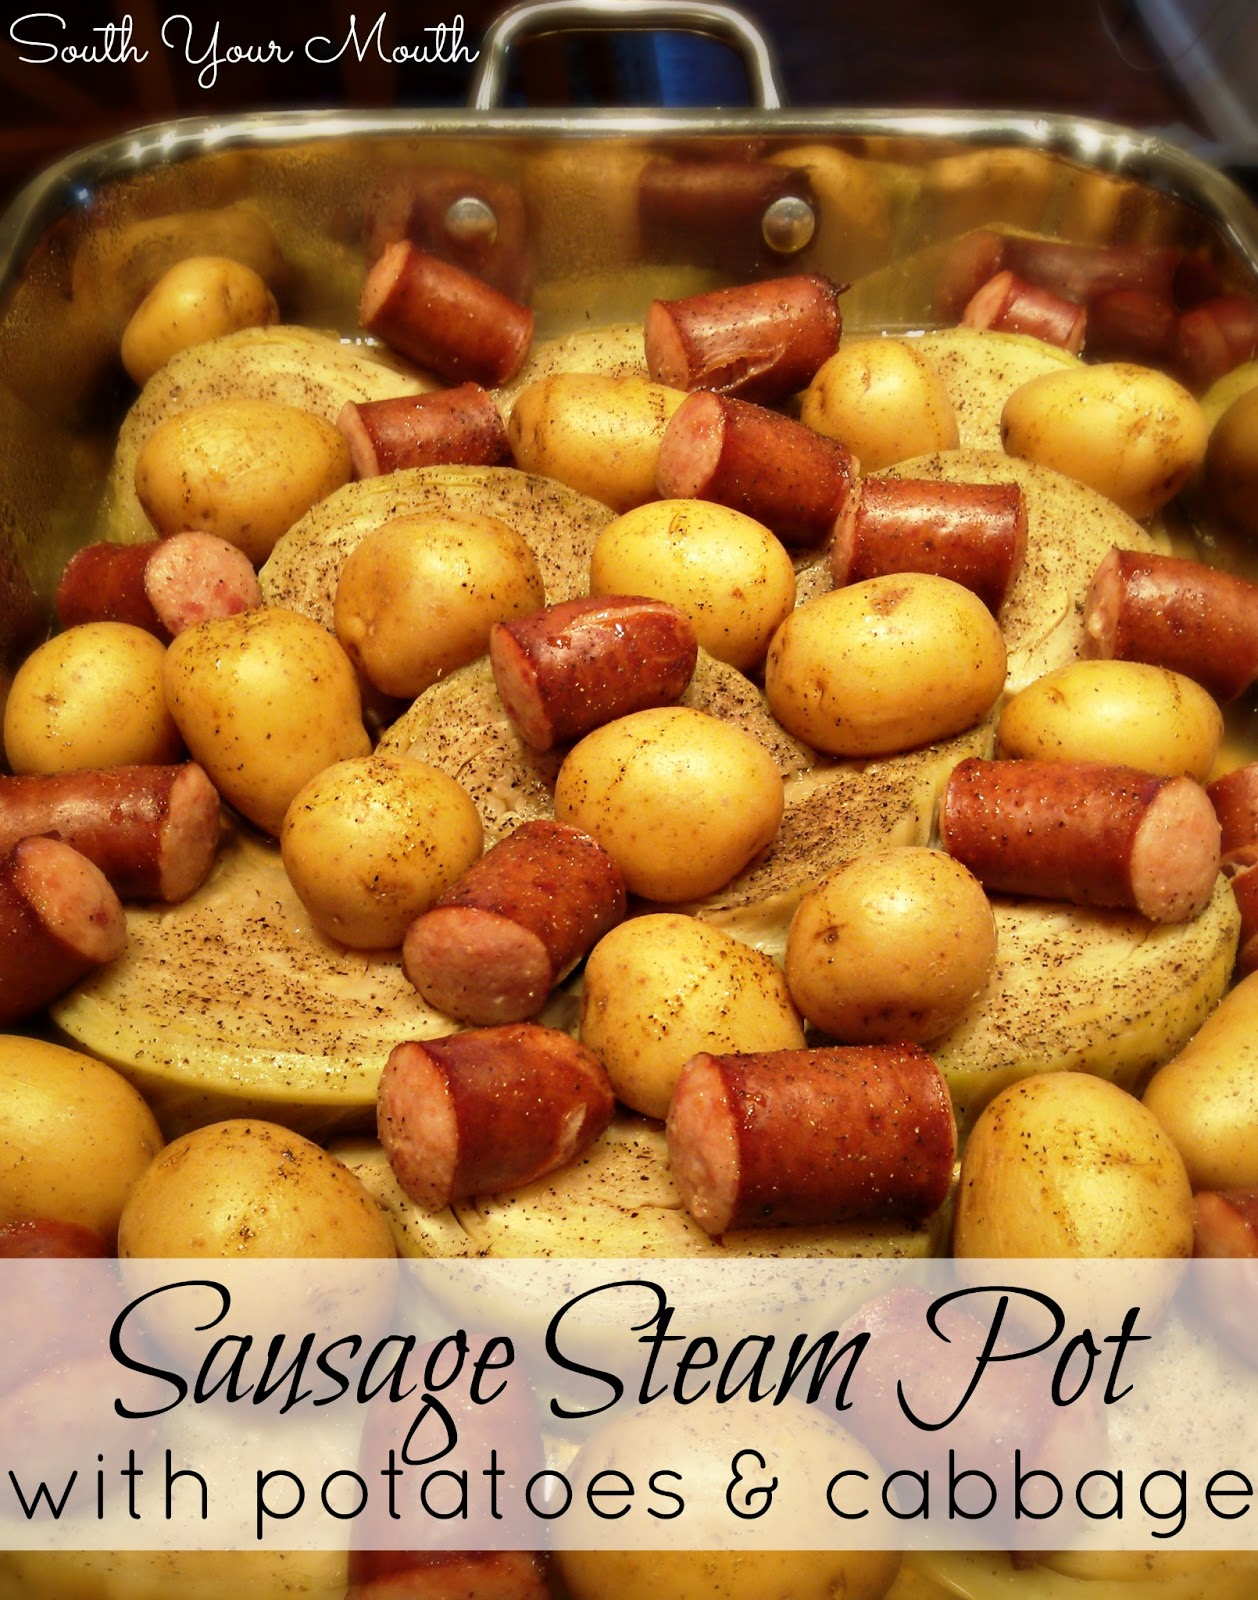 How to cook the cabbage with potatoes in a slow cooker 85